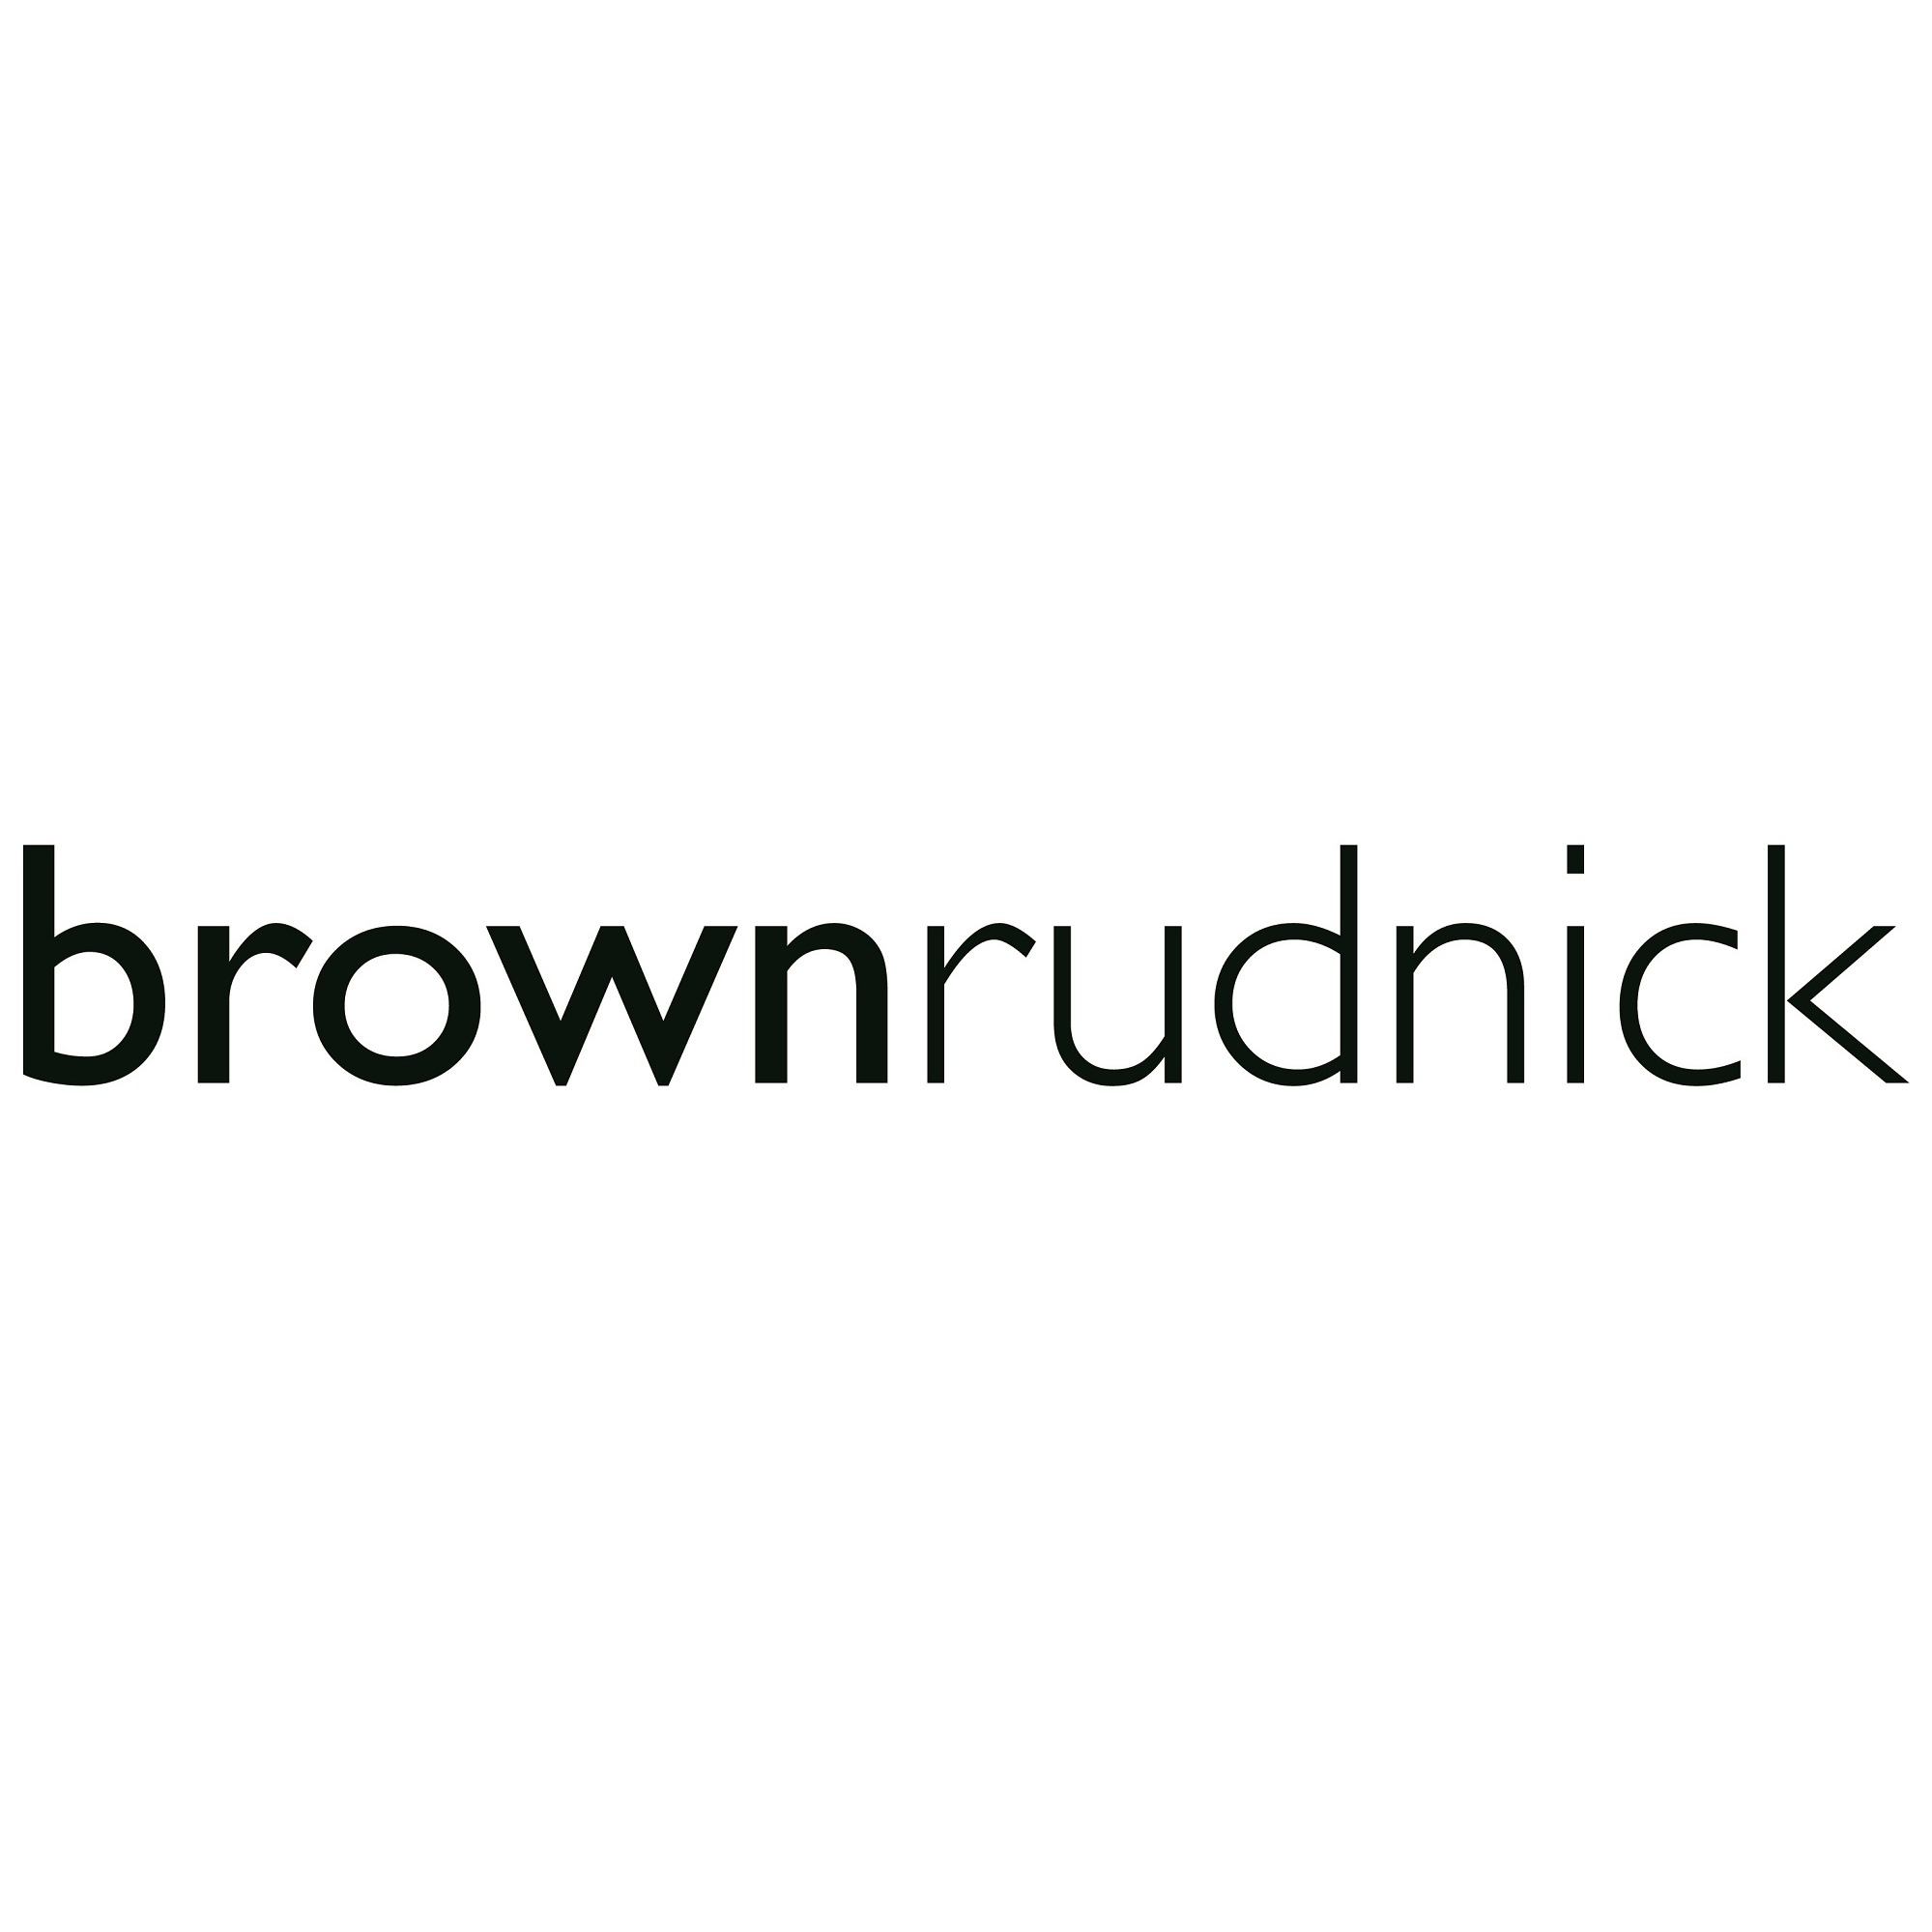 the Brown Rudnick logo.